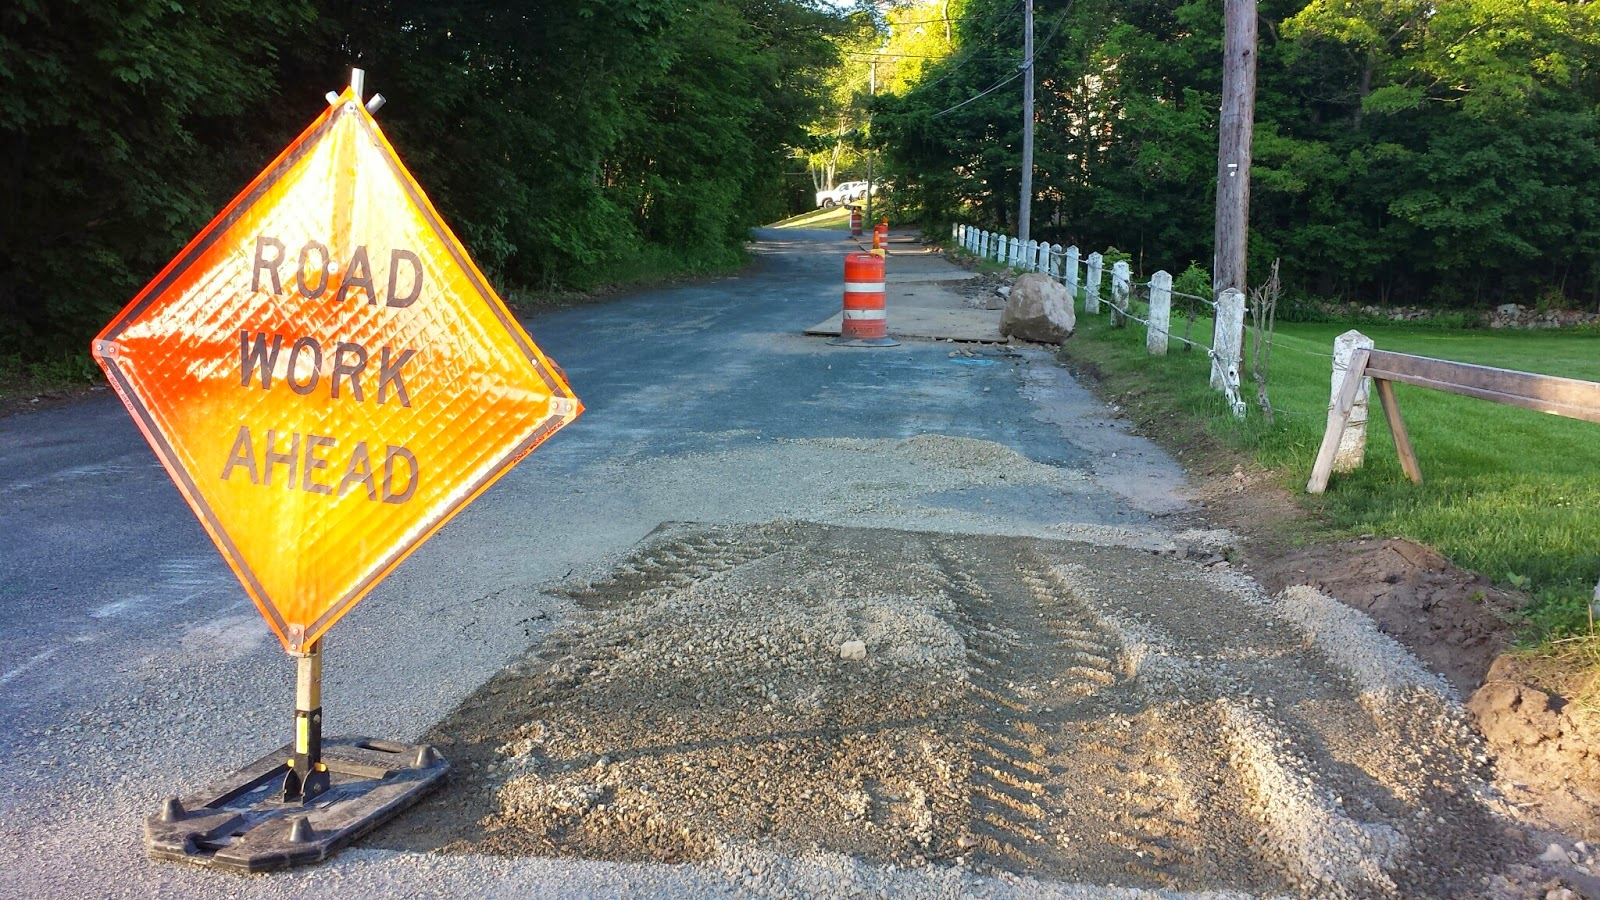 road work on Uncas St